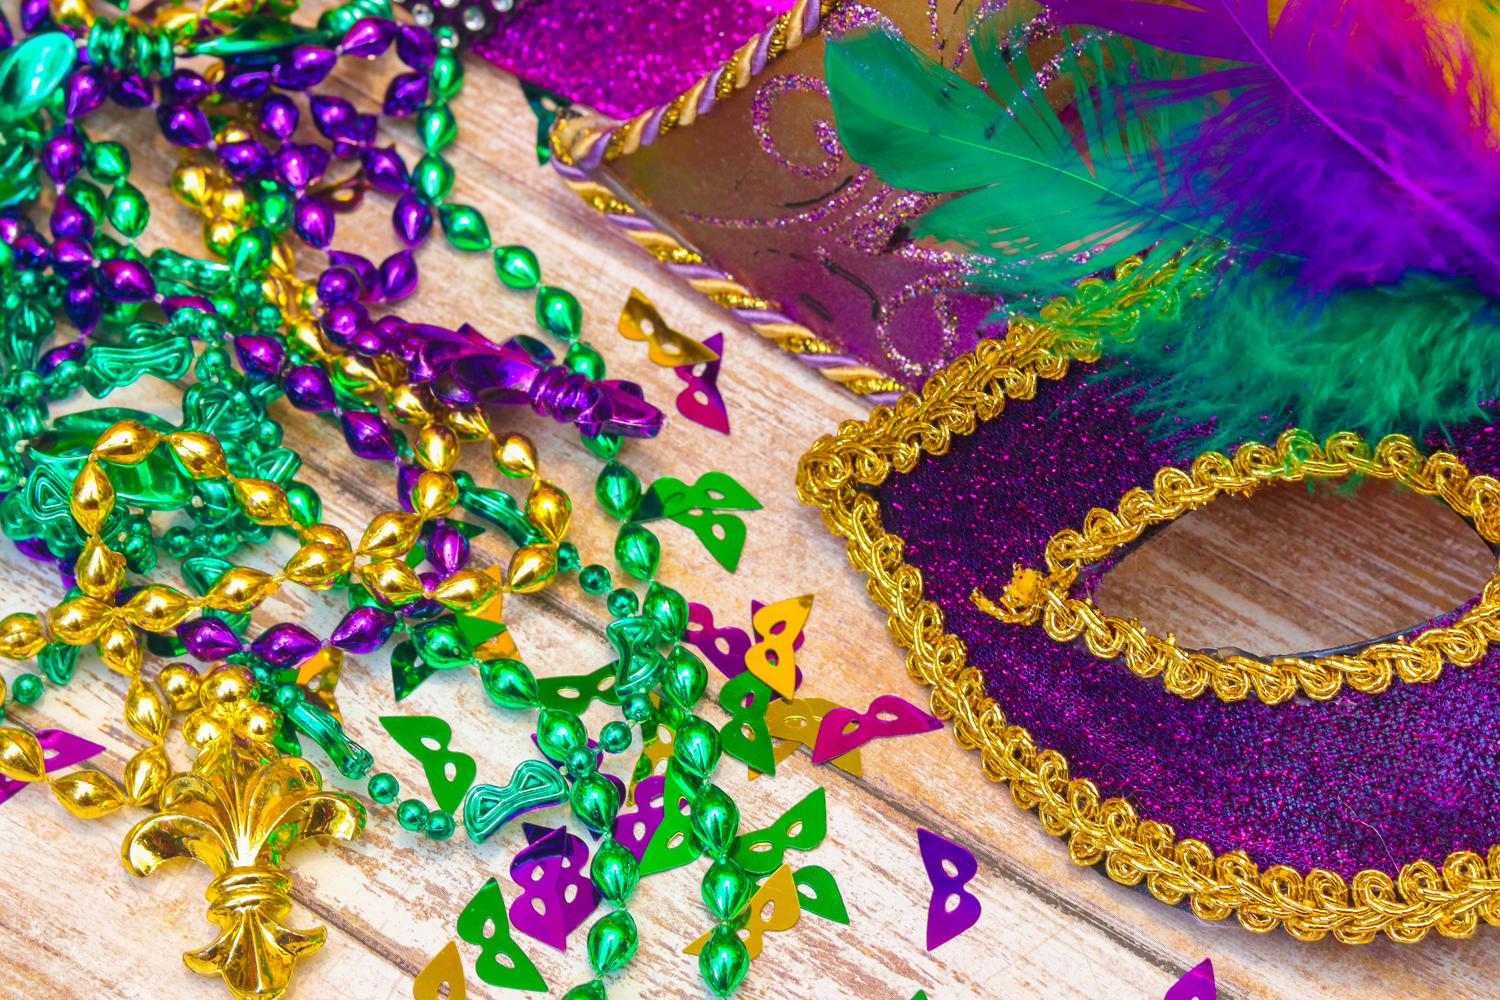 How to enjoy a safe Mardi Gras this year